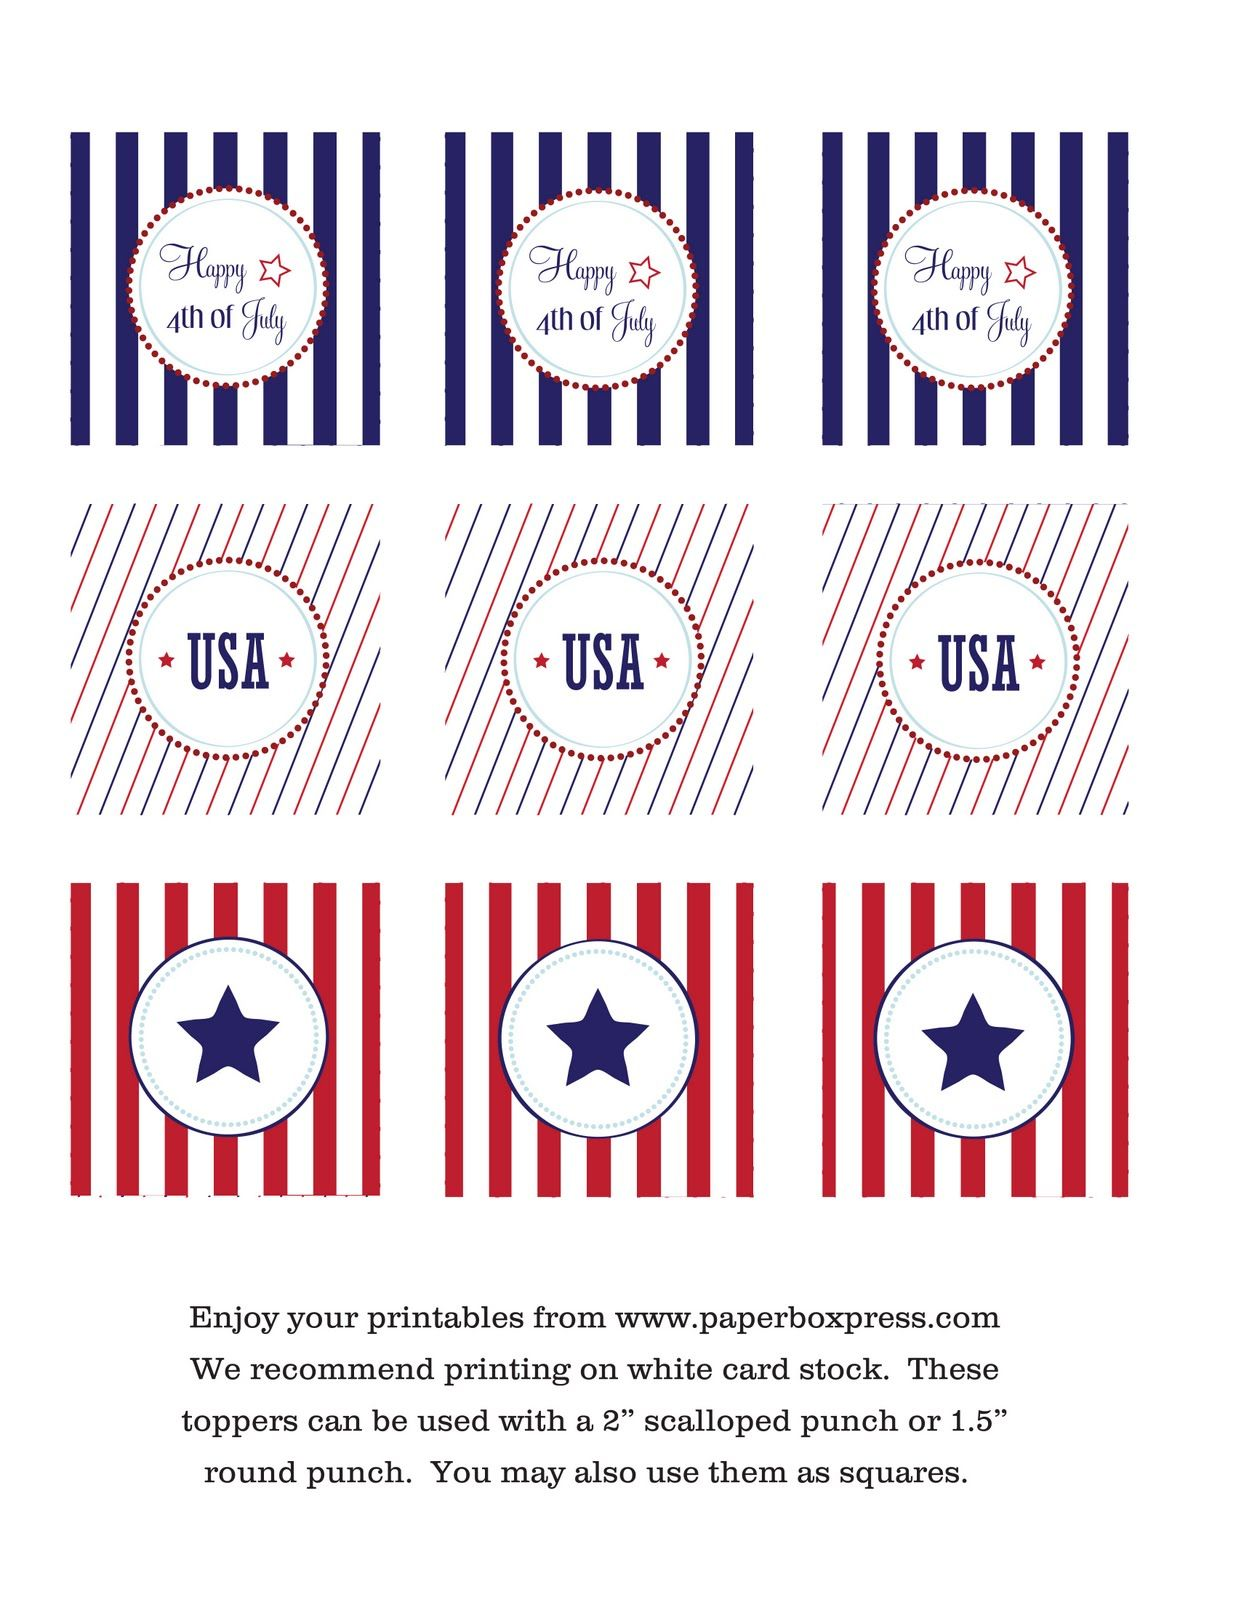 4th of july party idea roundup party on a budget ideas free rh pinterest com